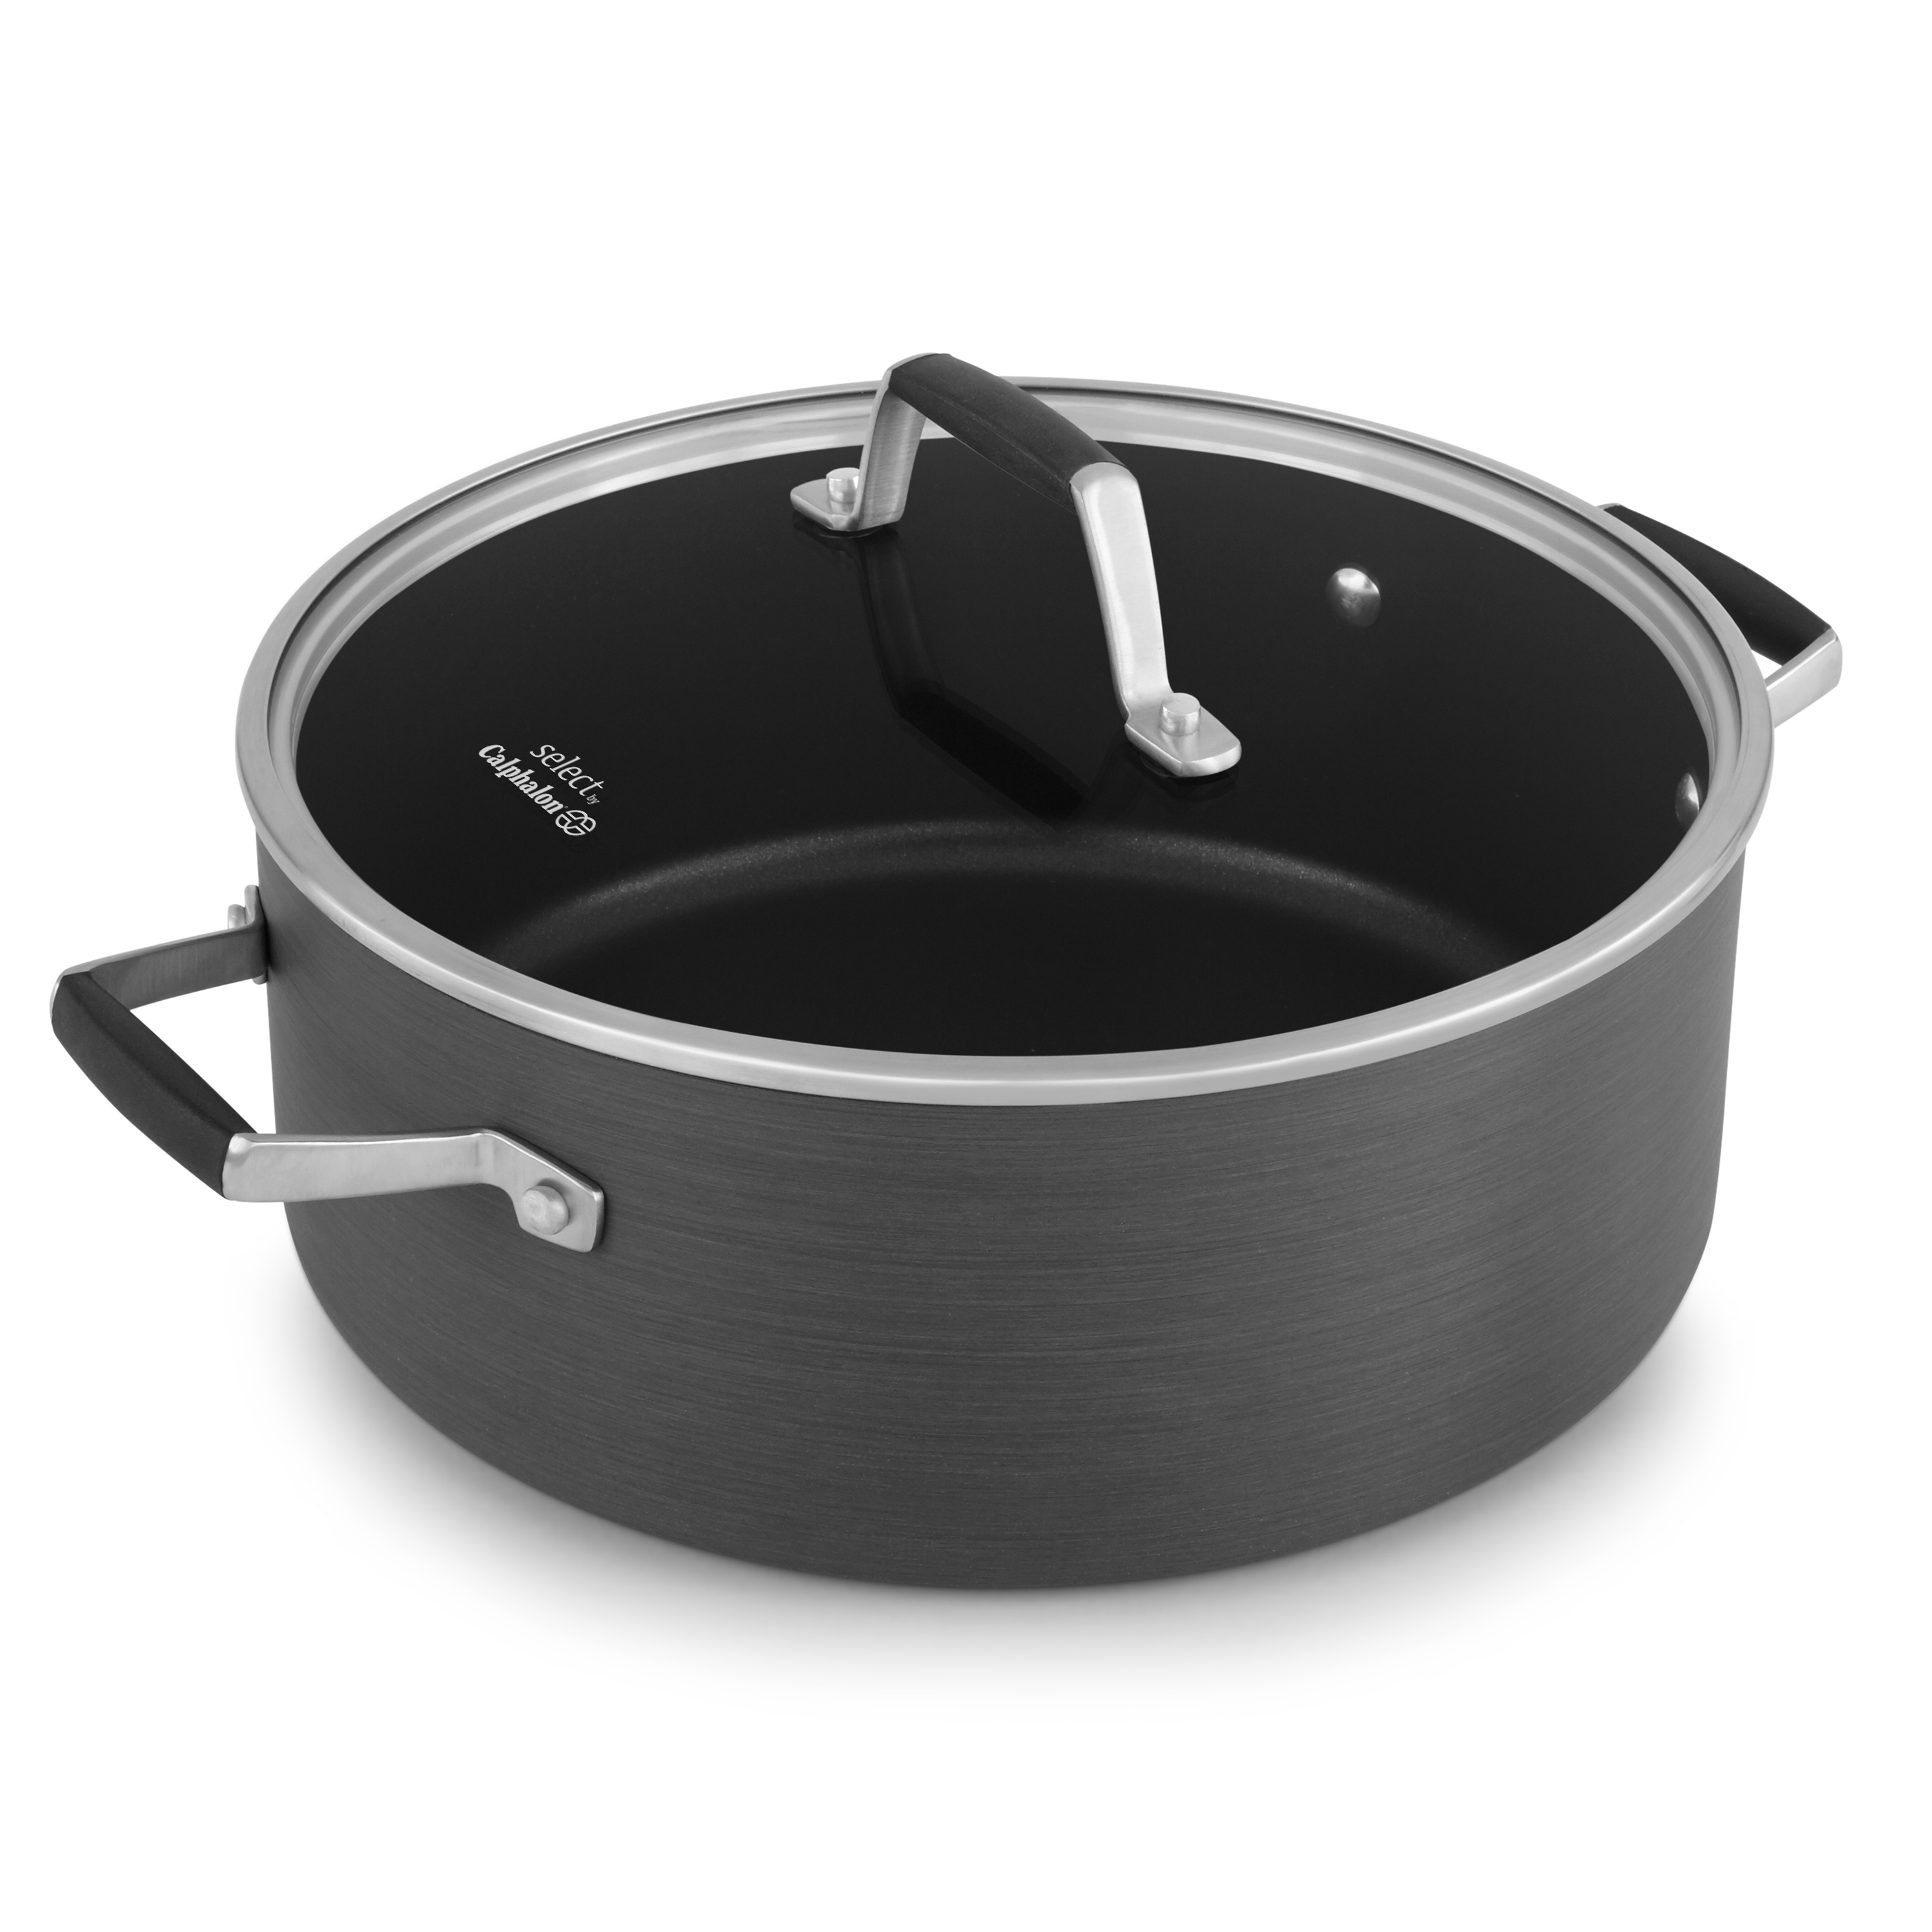 Calphalon Contemporary Nonstick 5-Quart Dutch Oven